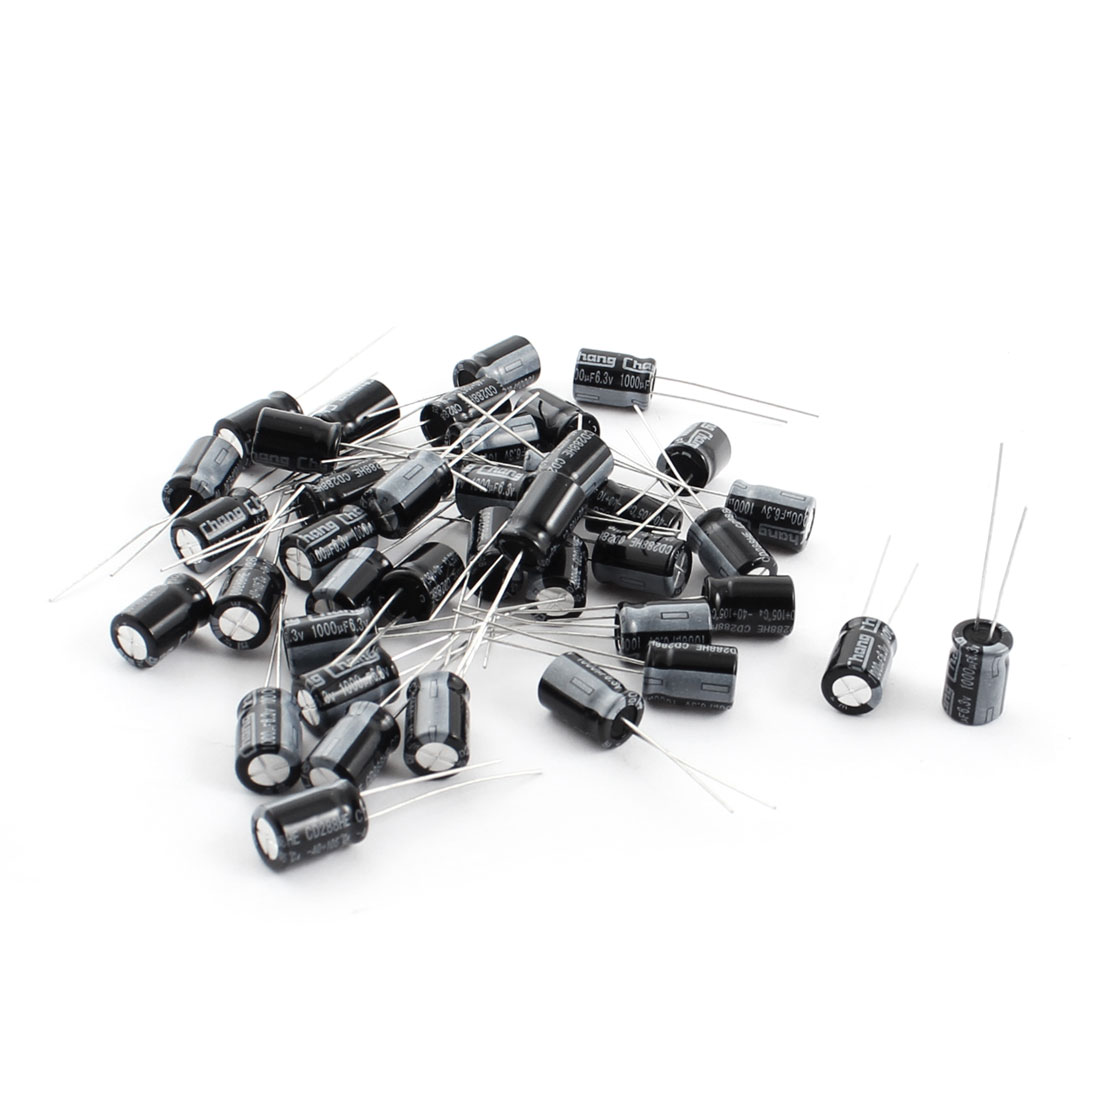 40 Pcs 6.3V 1000uF Radial Lead Through Hole Mount Cylinder Shaped Aluminum Electrolytic Capacitor 6mm x 8mm